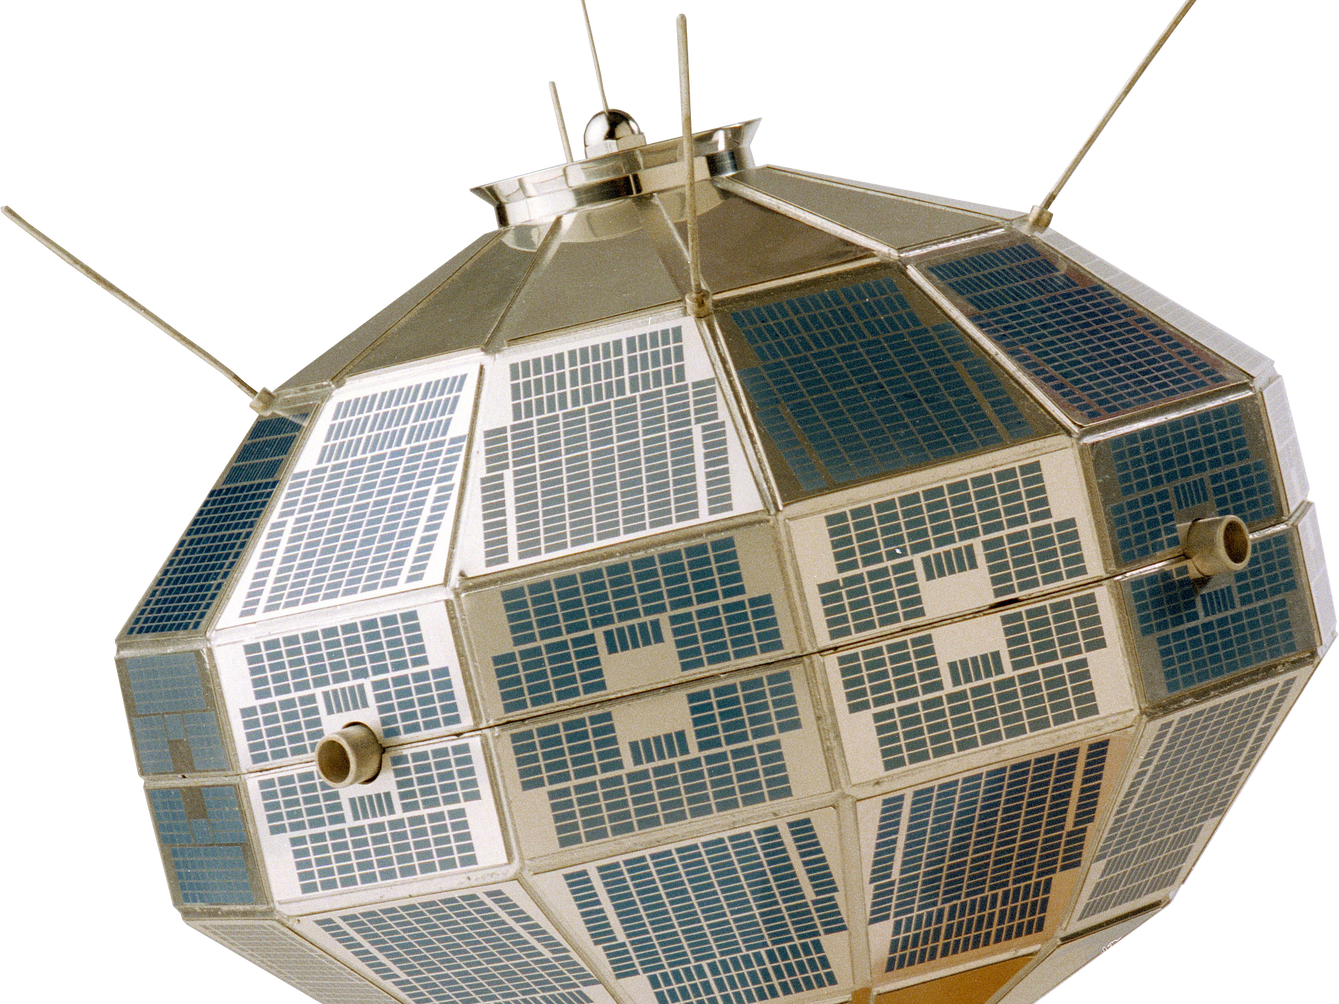 The Alouette Satellite